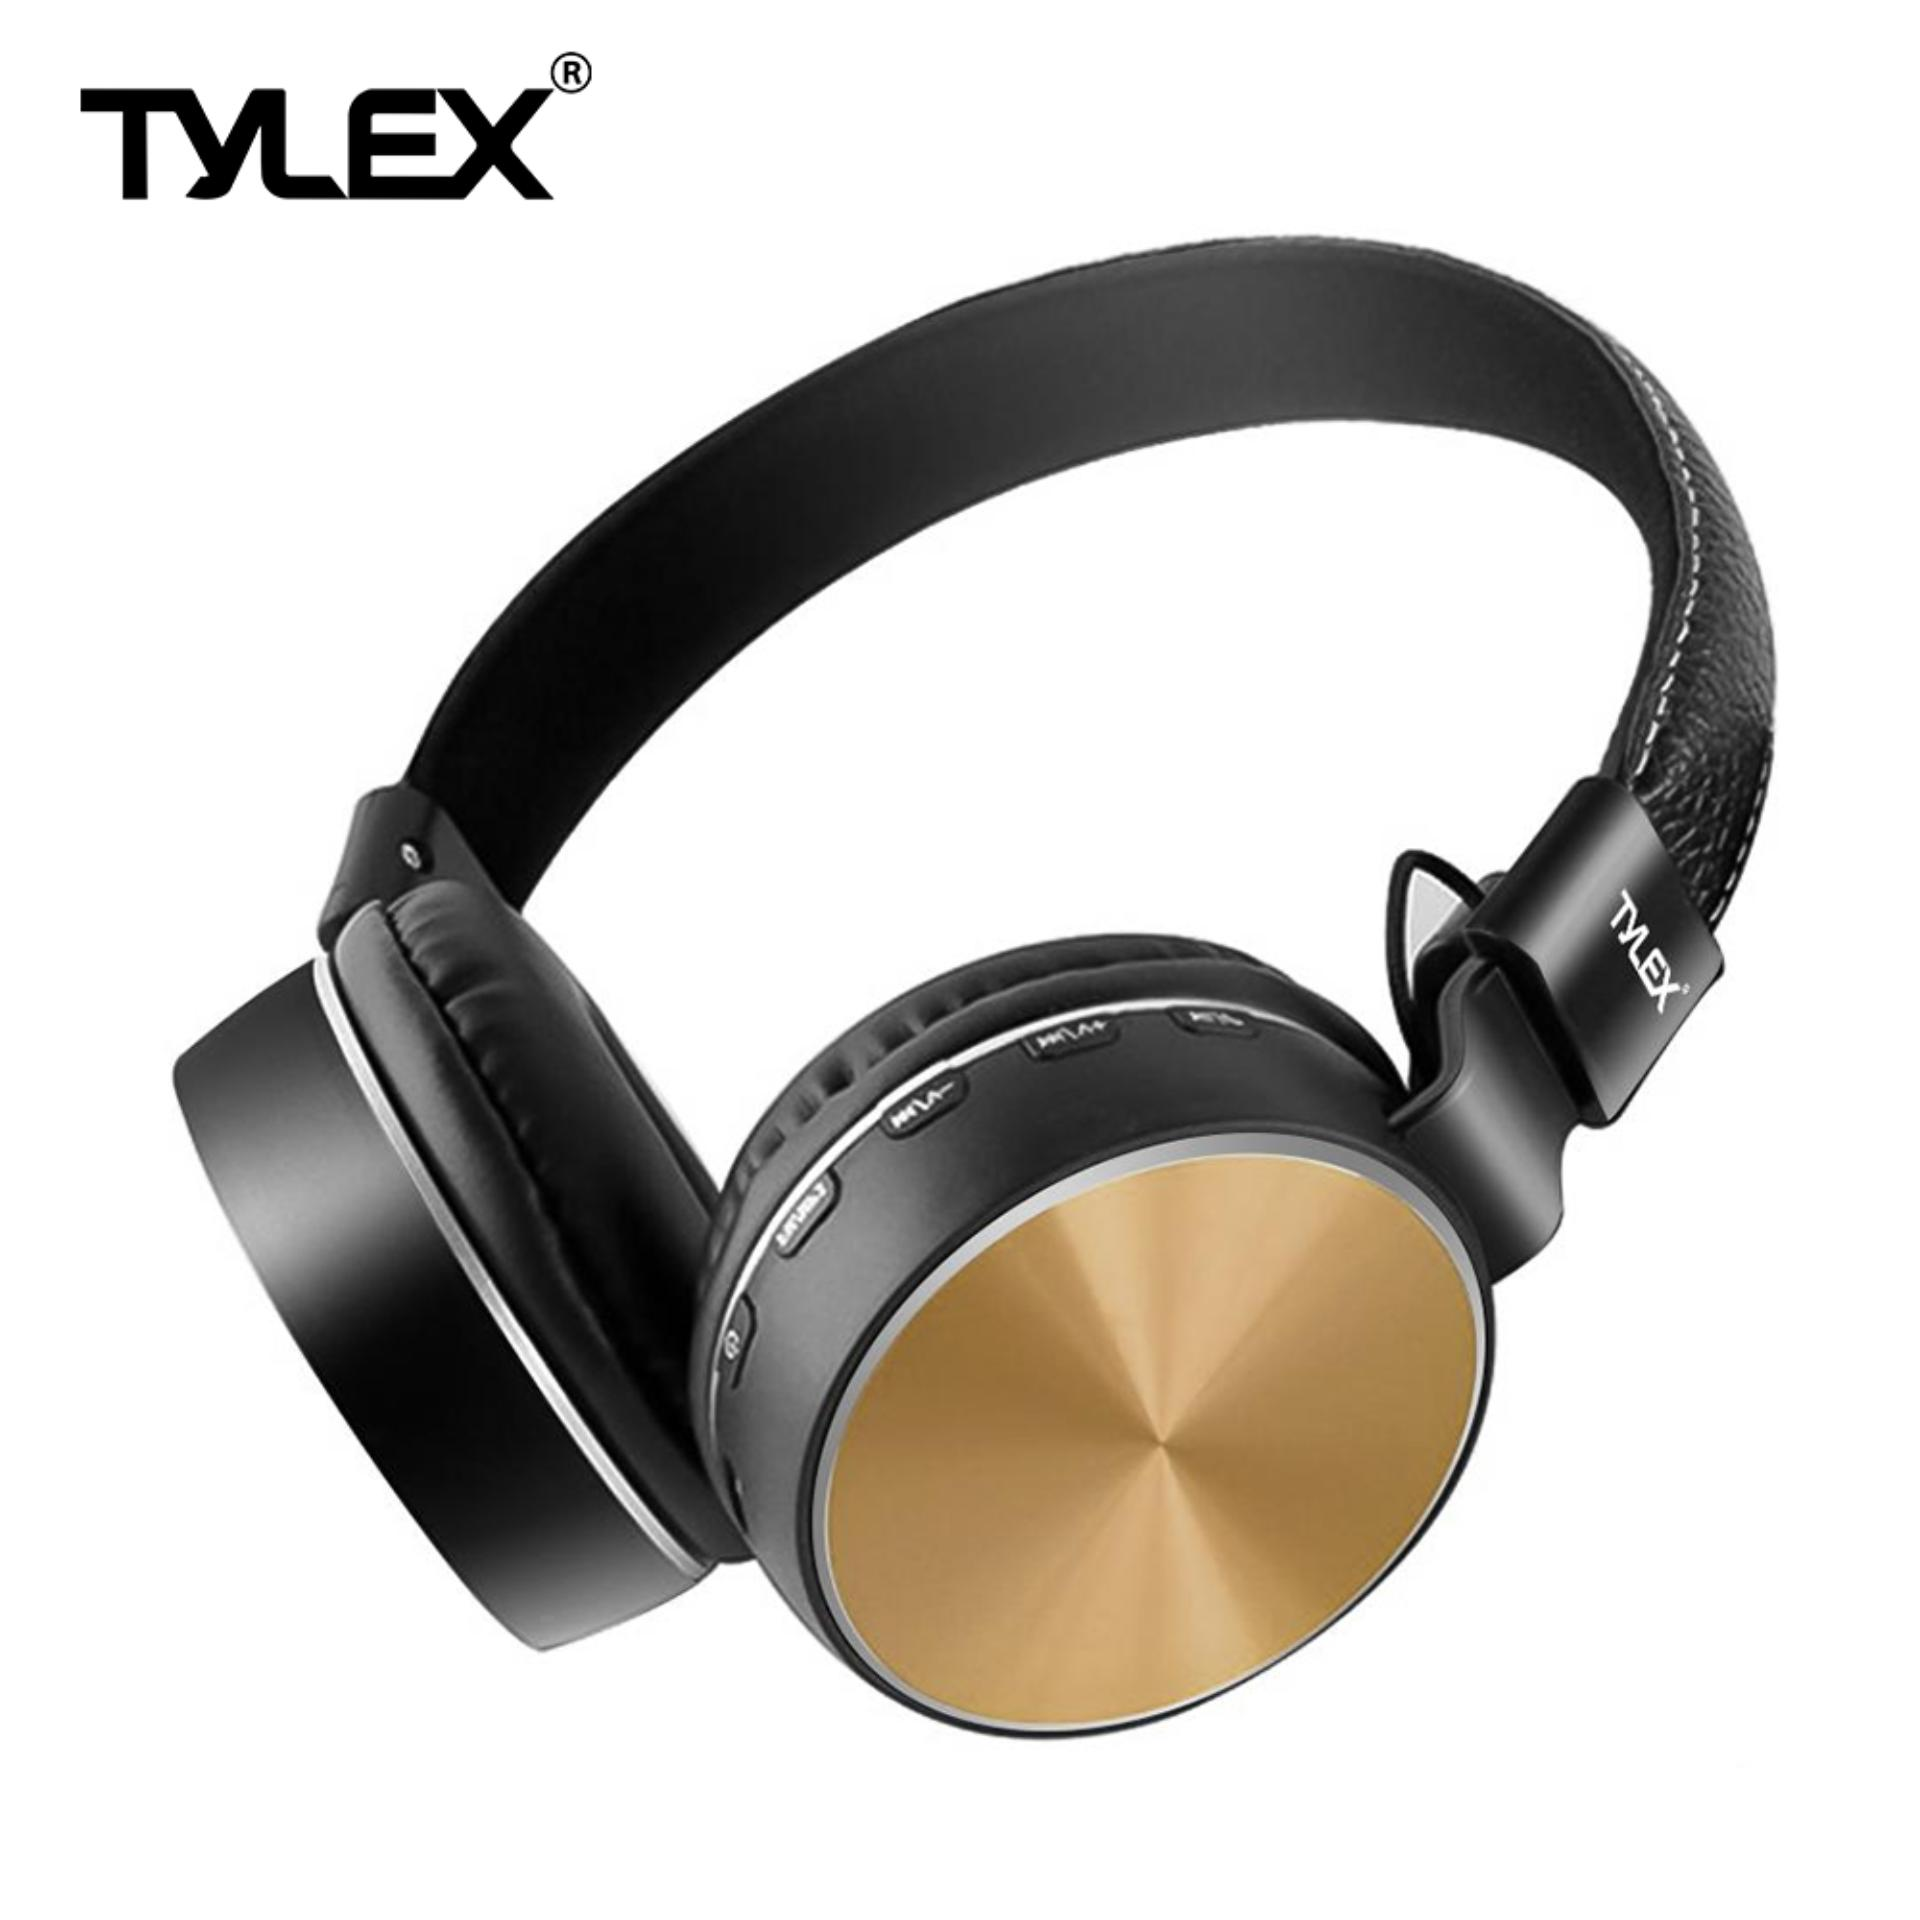 33b53c4395d TYLEX MS-K1 Wireless Stereo Extra Bass Portable Bluetooth On-Ear Headphones  w/